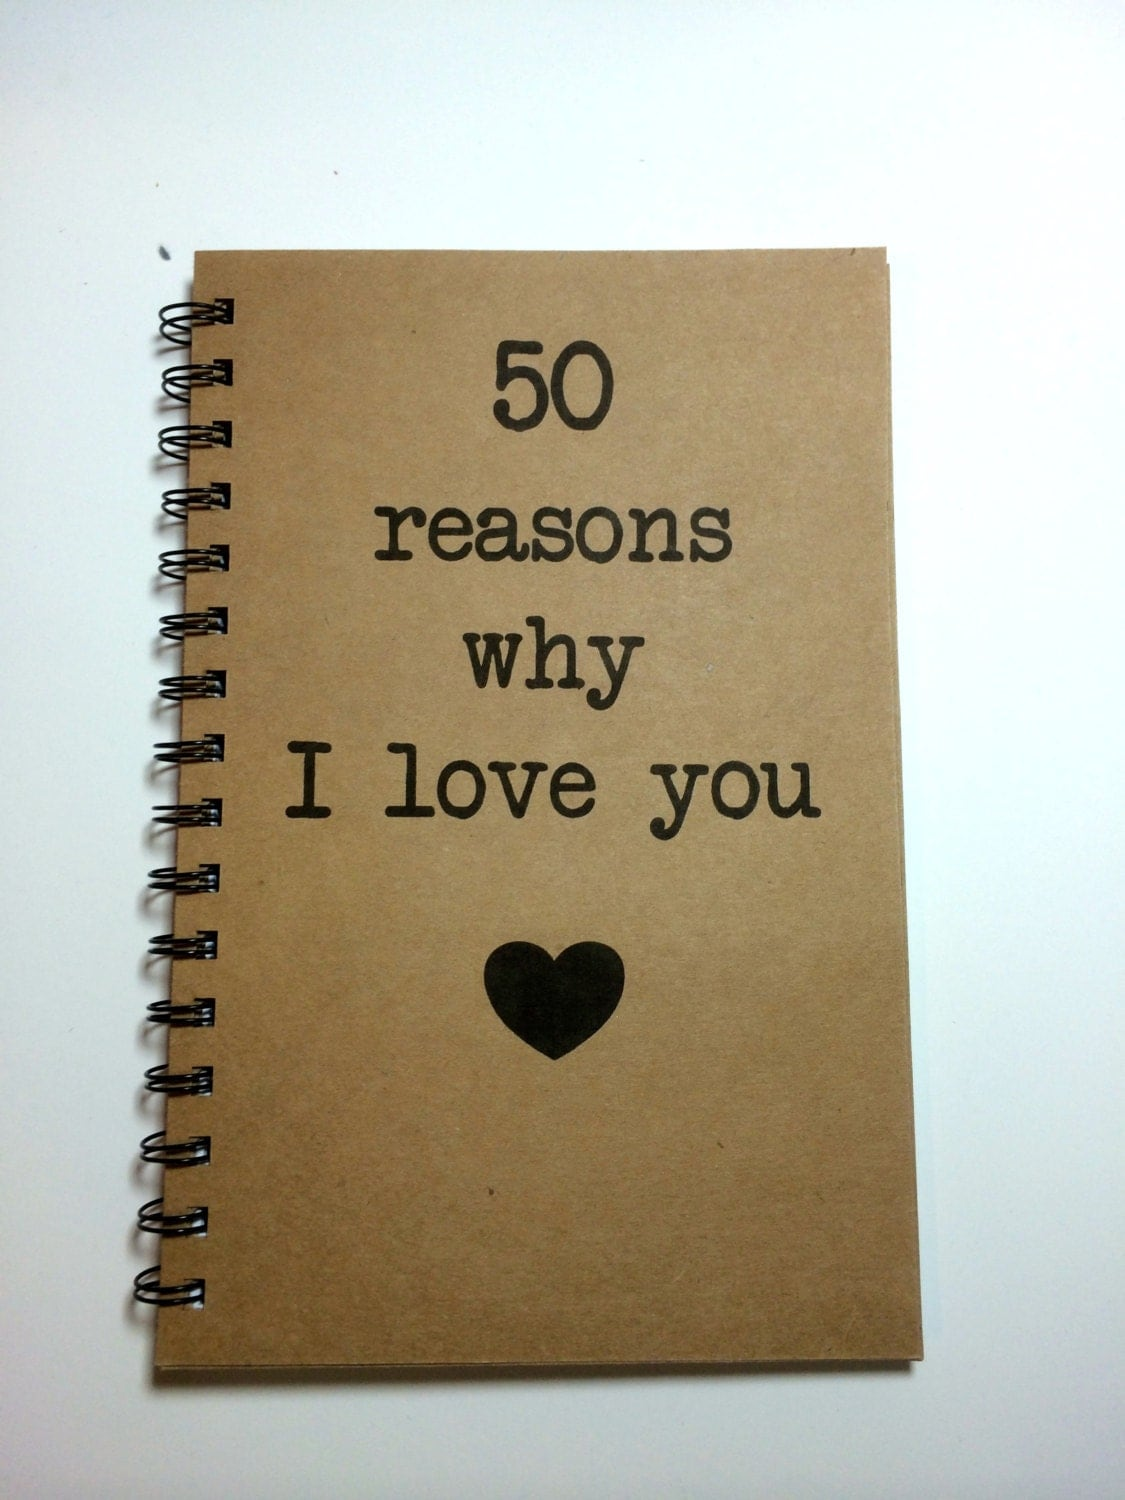 Why I Don T Use Seasonal Capsule Wardrobes: Reasons Why I Love You Notebook Love Notes Journal